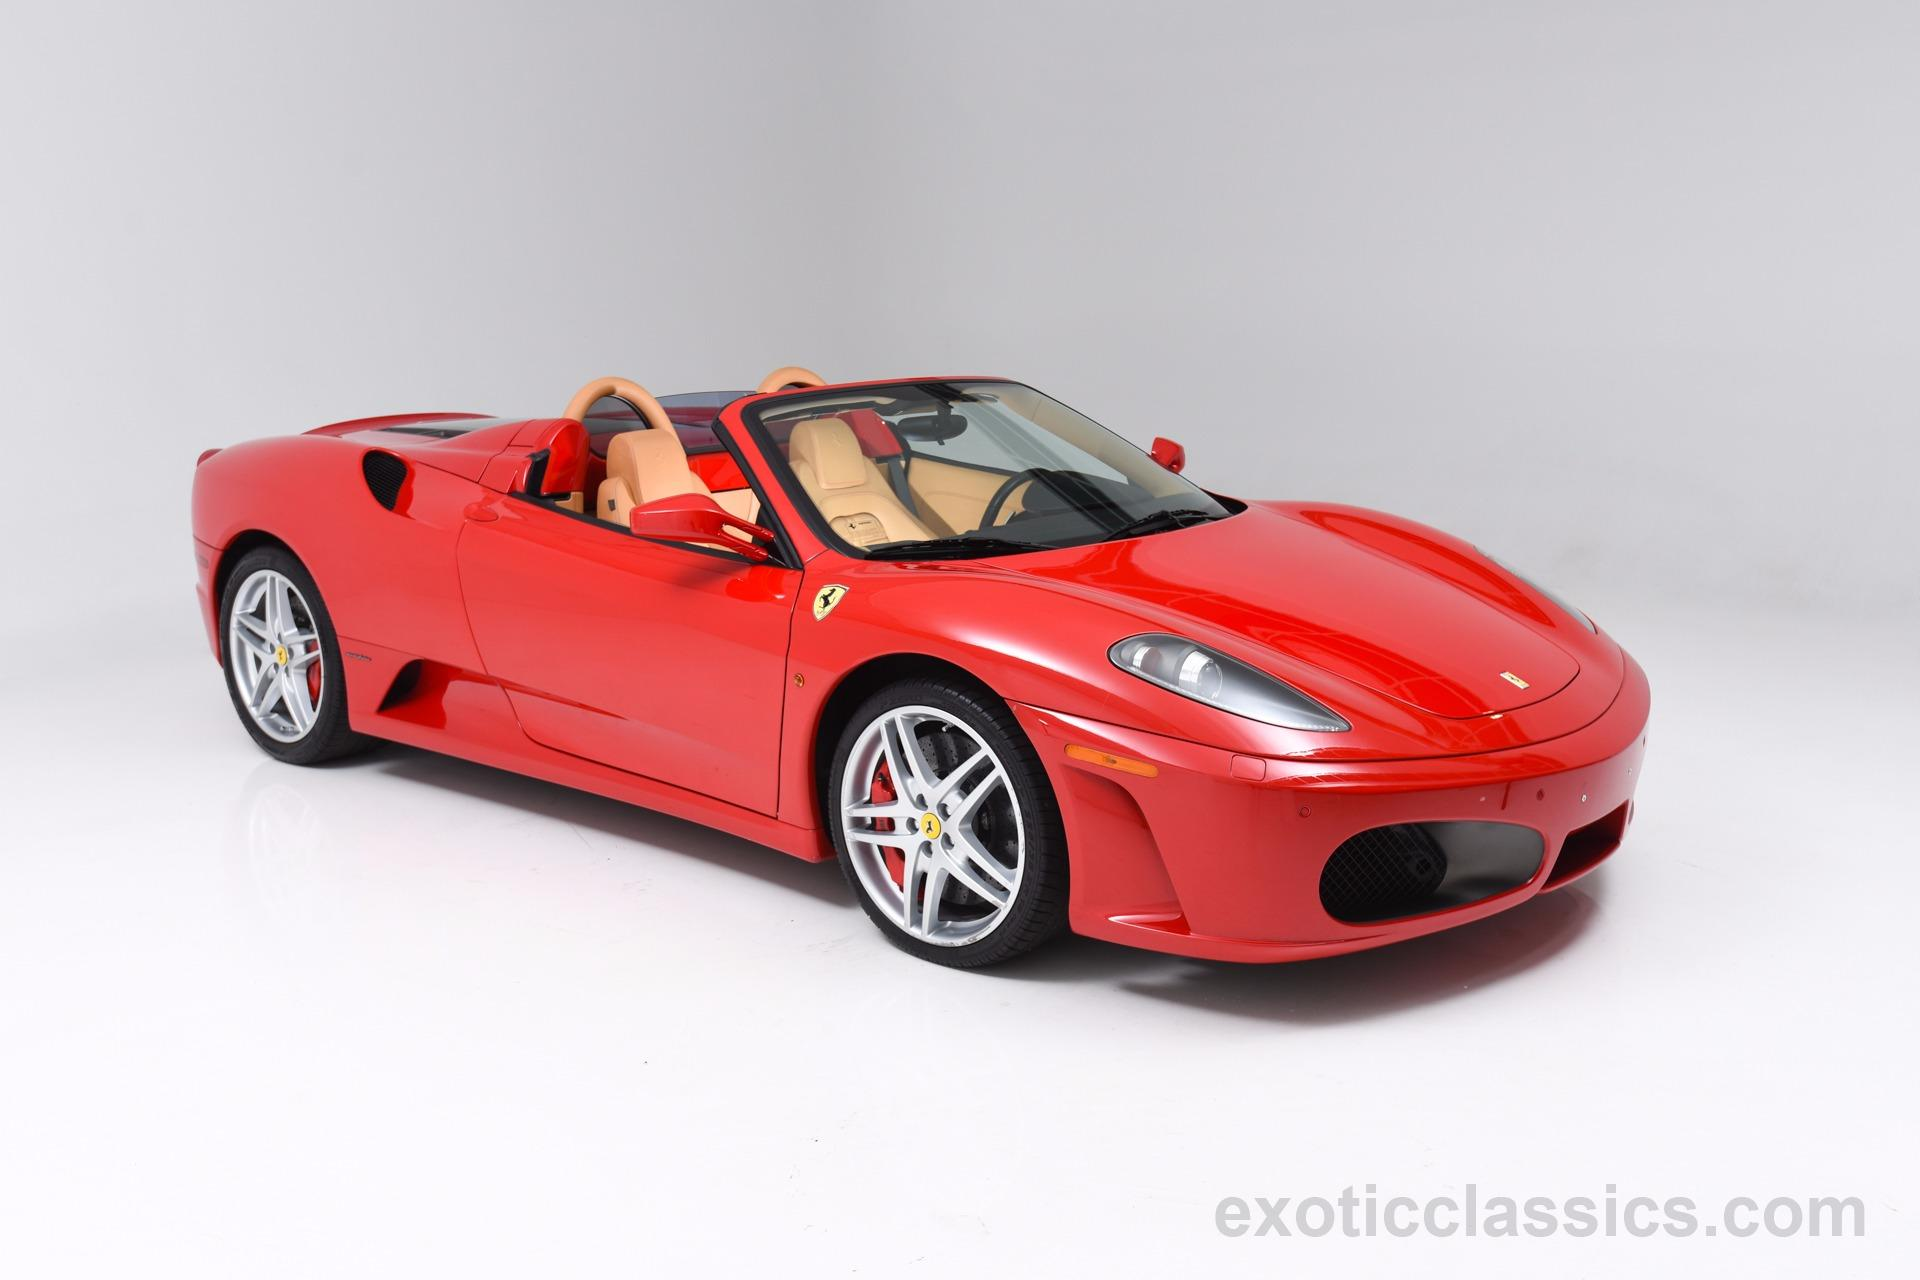 Ferrari F430 - the top of perfection